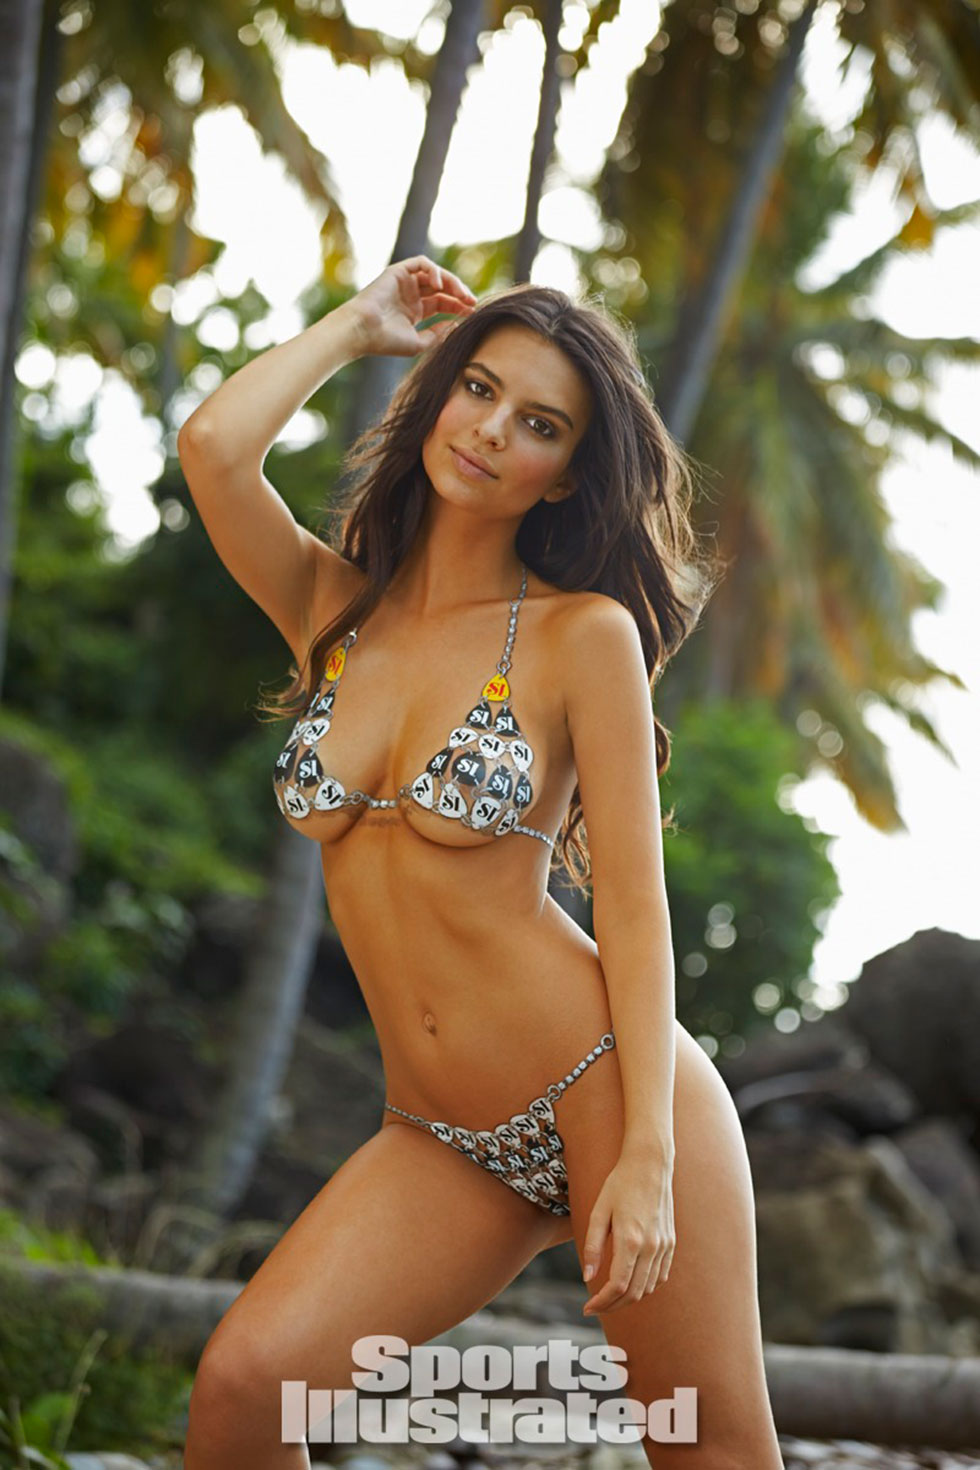 Emily-Ratajkowski-for-Sports-Illustrated-Swimsuit-Edition-2014_10